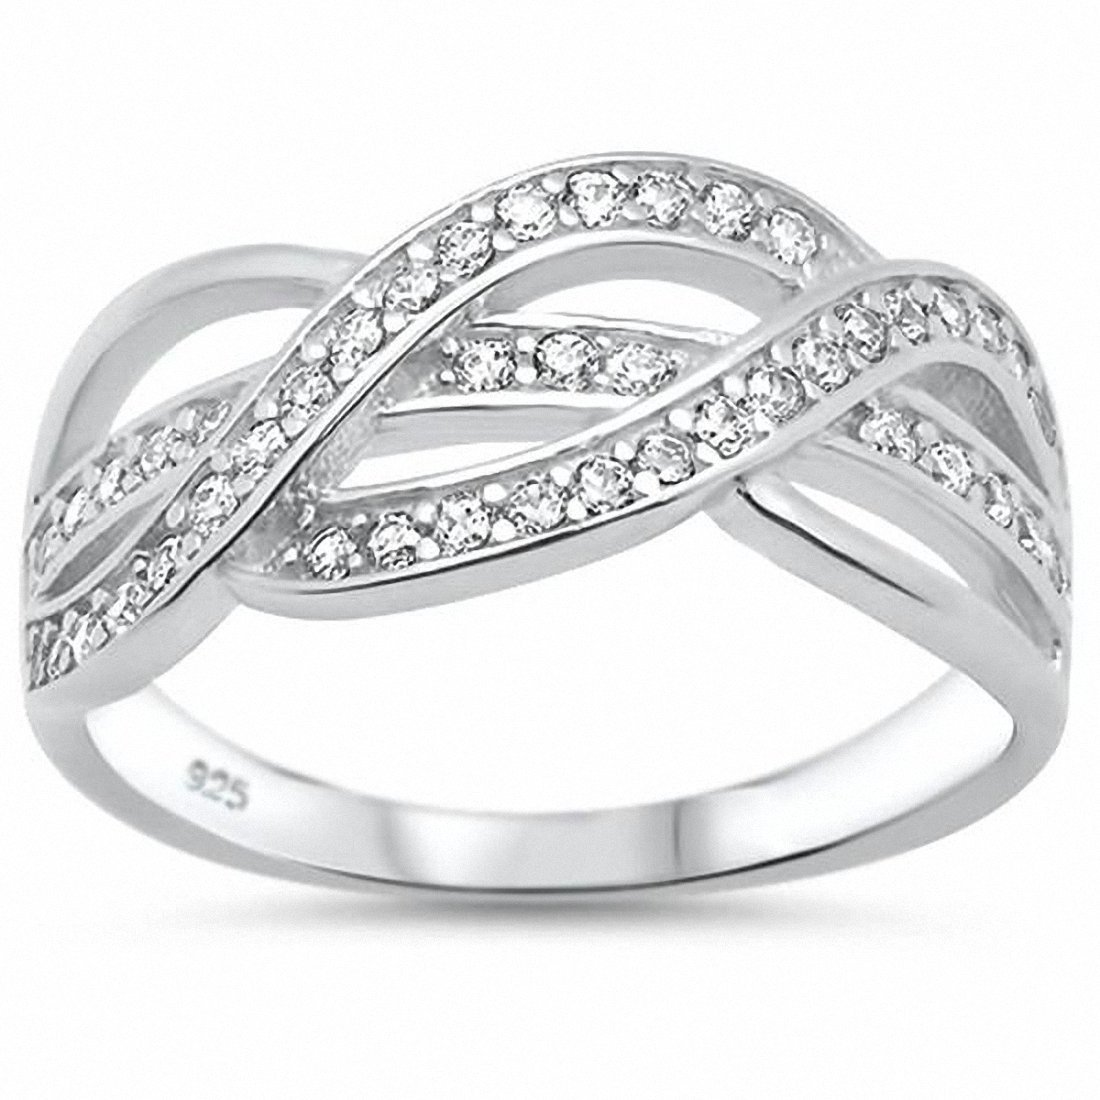 Blue Apple Co. Half Eternity Weave Knot Ring Crisscross Crossover Simulated Round Cubic Zirconia 925 Sterling SilverSize-7